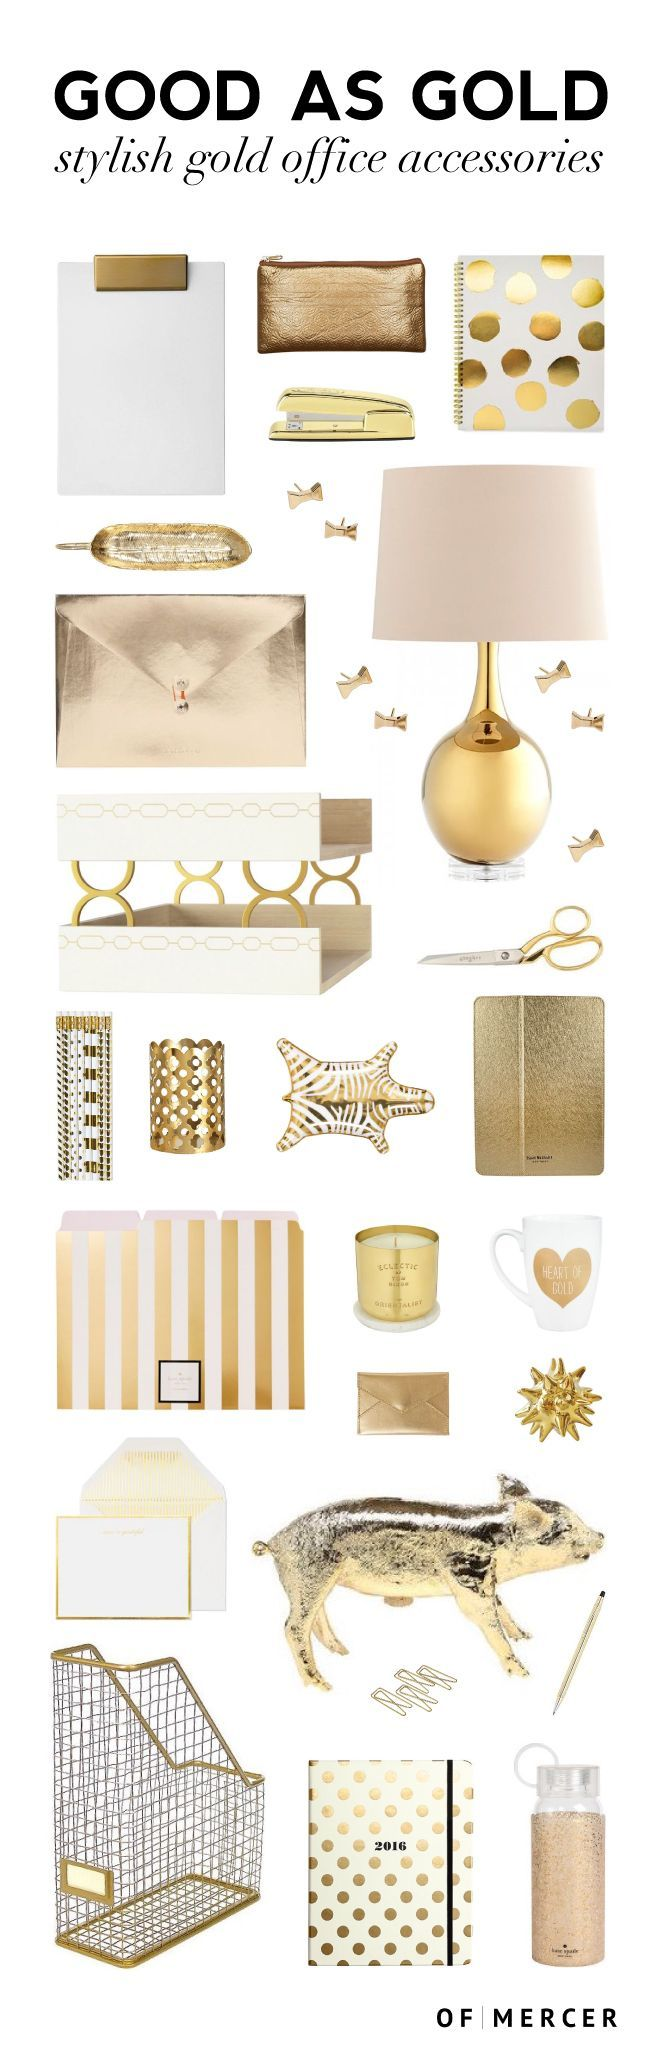 office decorative accessories. Good As Gold: Stylish Gold Office Accessories Desk Decorative